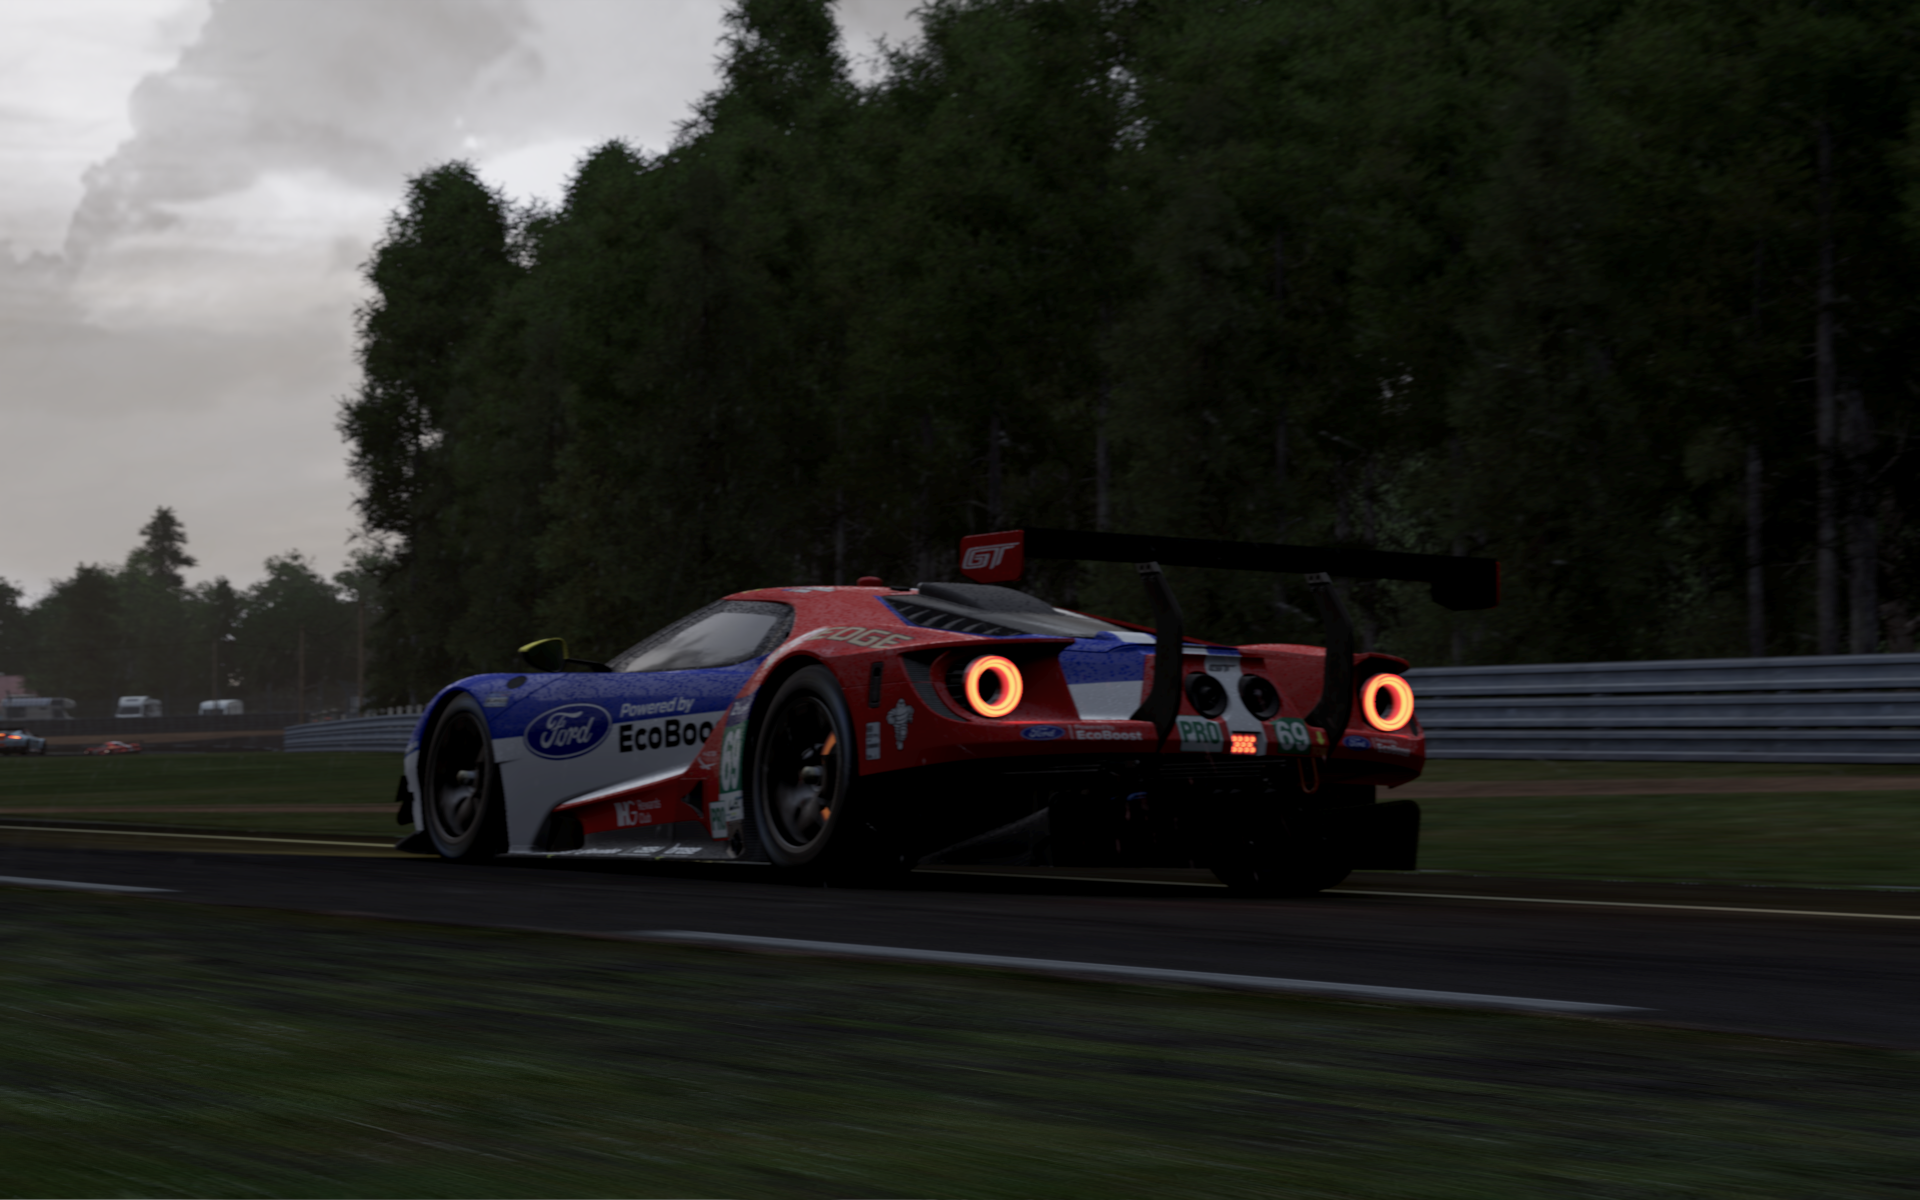 2016 ford gt lm gte 4k ultra hd wallpaper background - Project cars 4k wallpaper ...